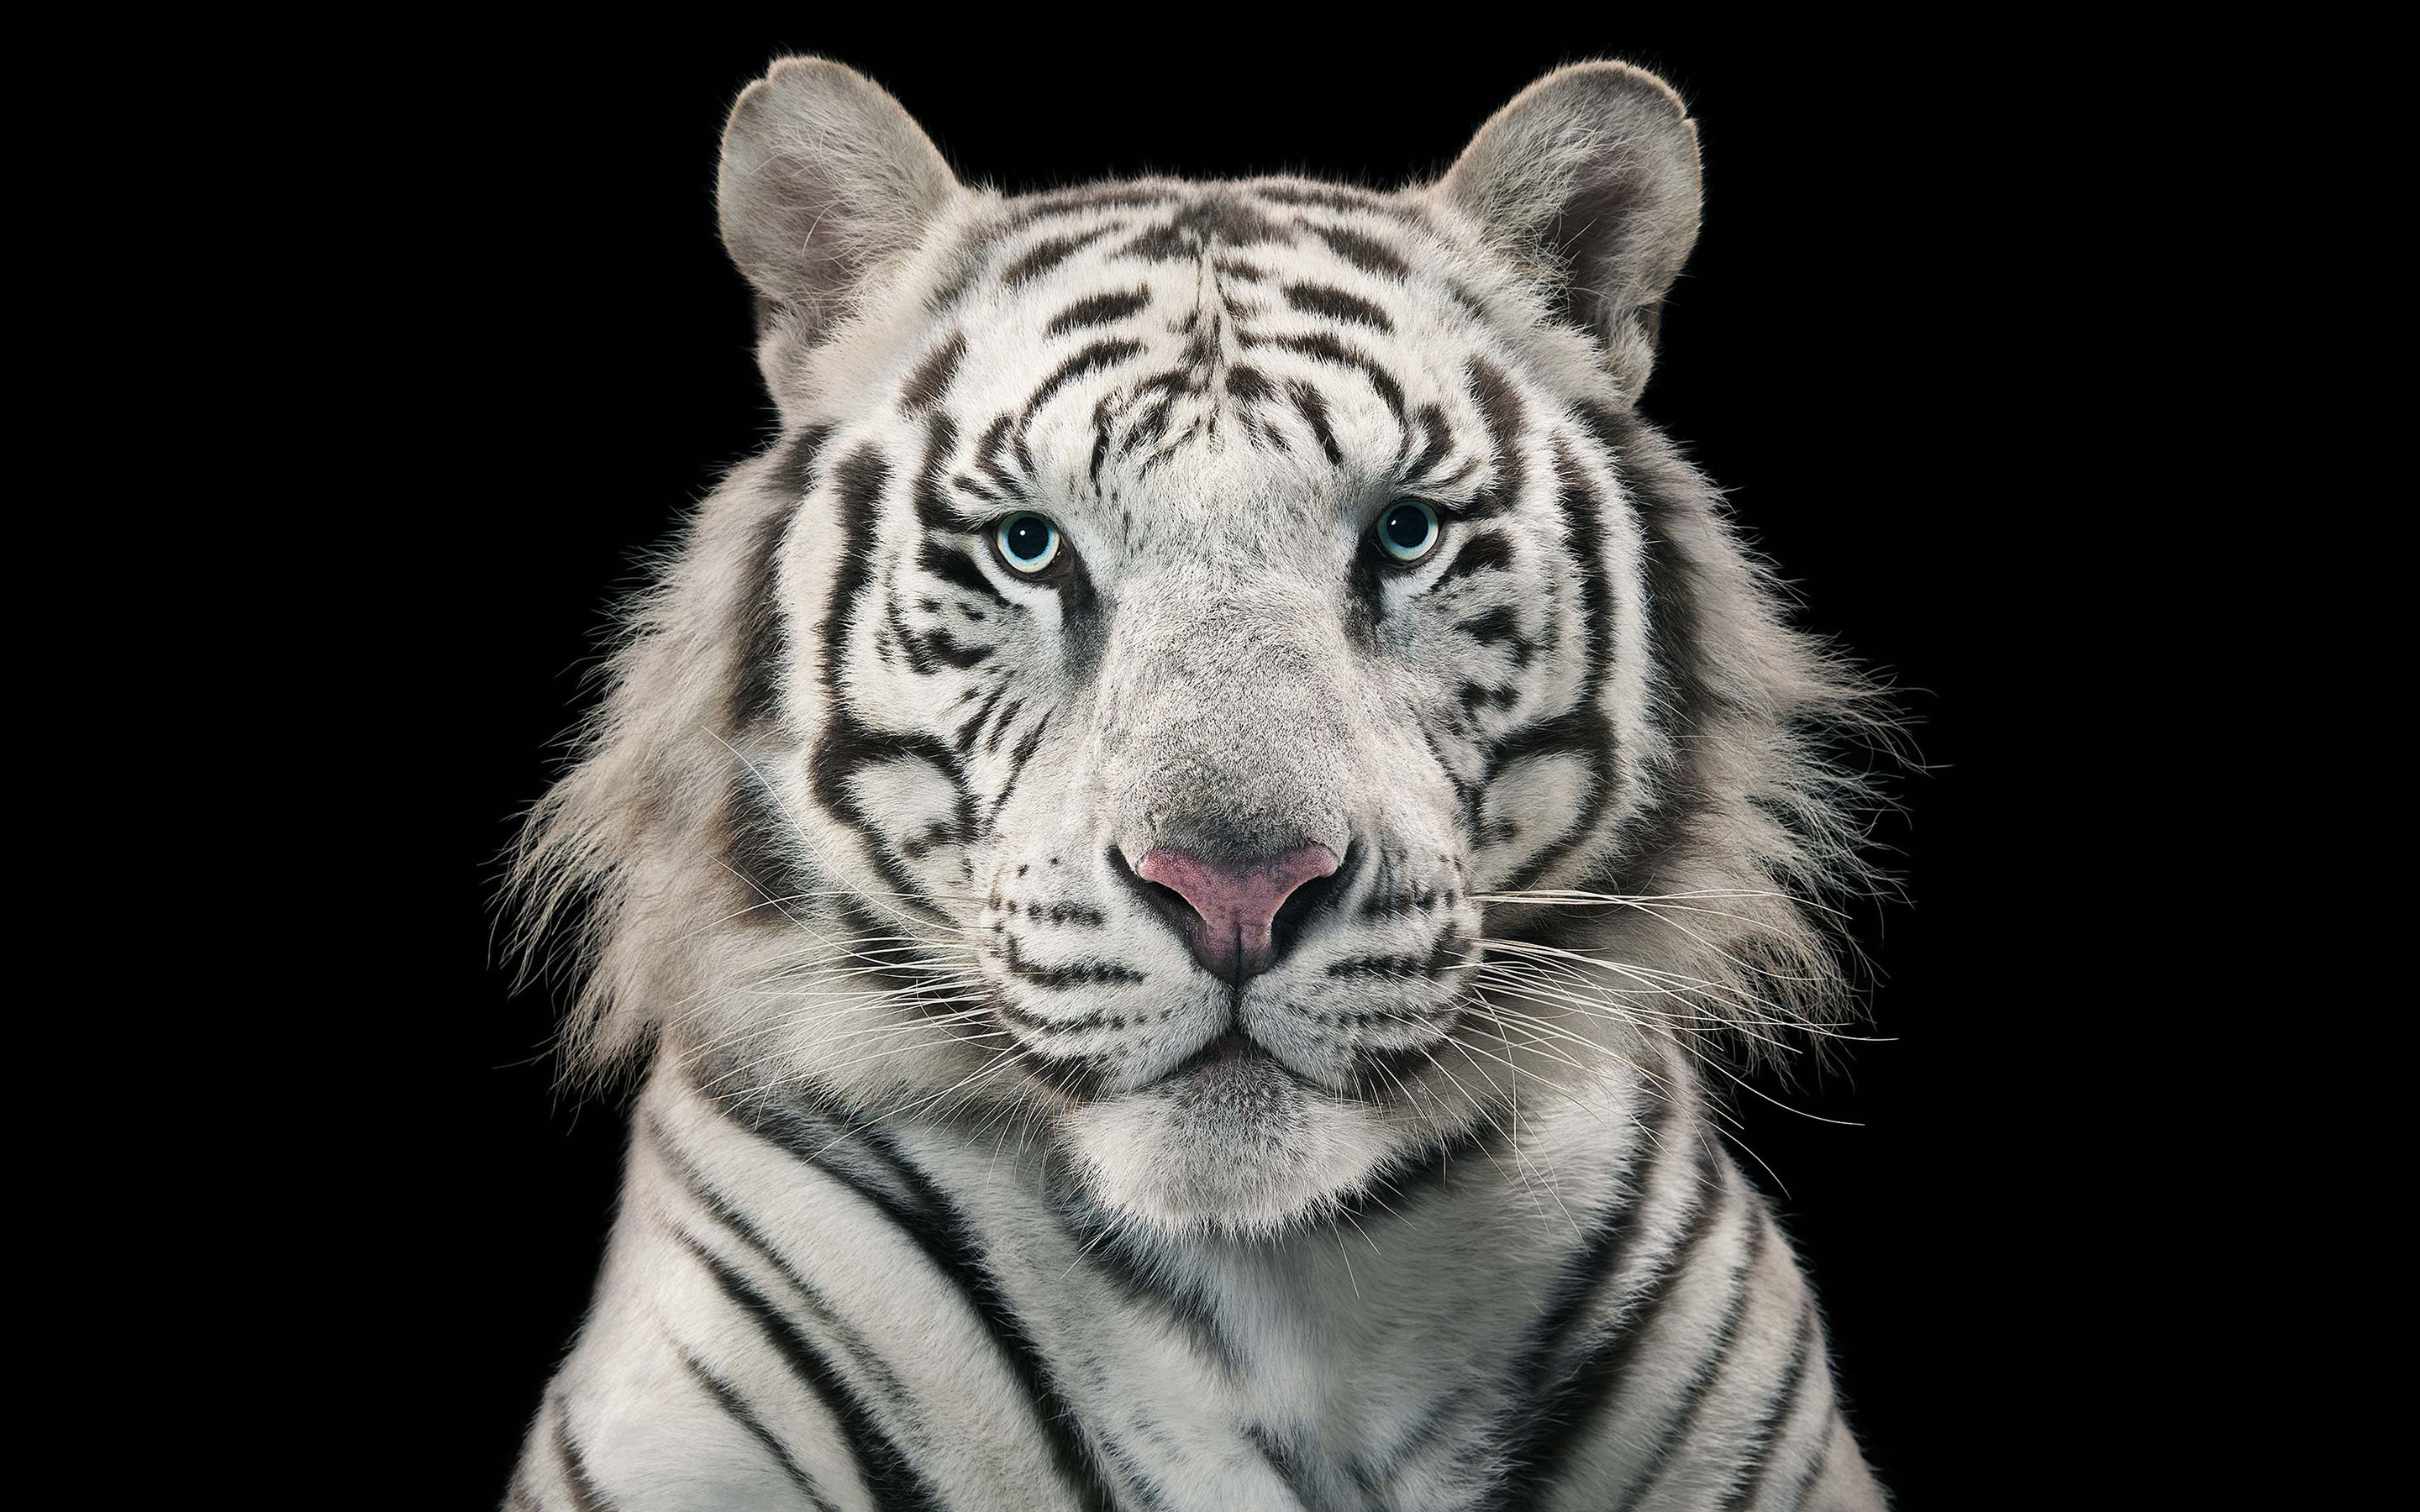 White Tiger Bengal Tiger wallpaper